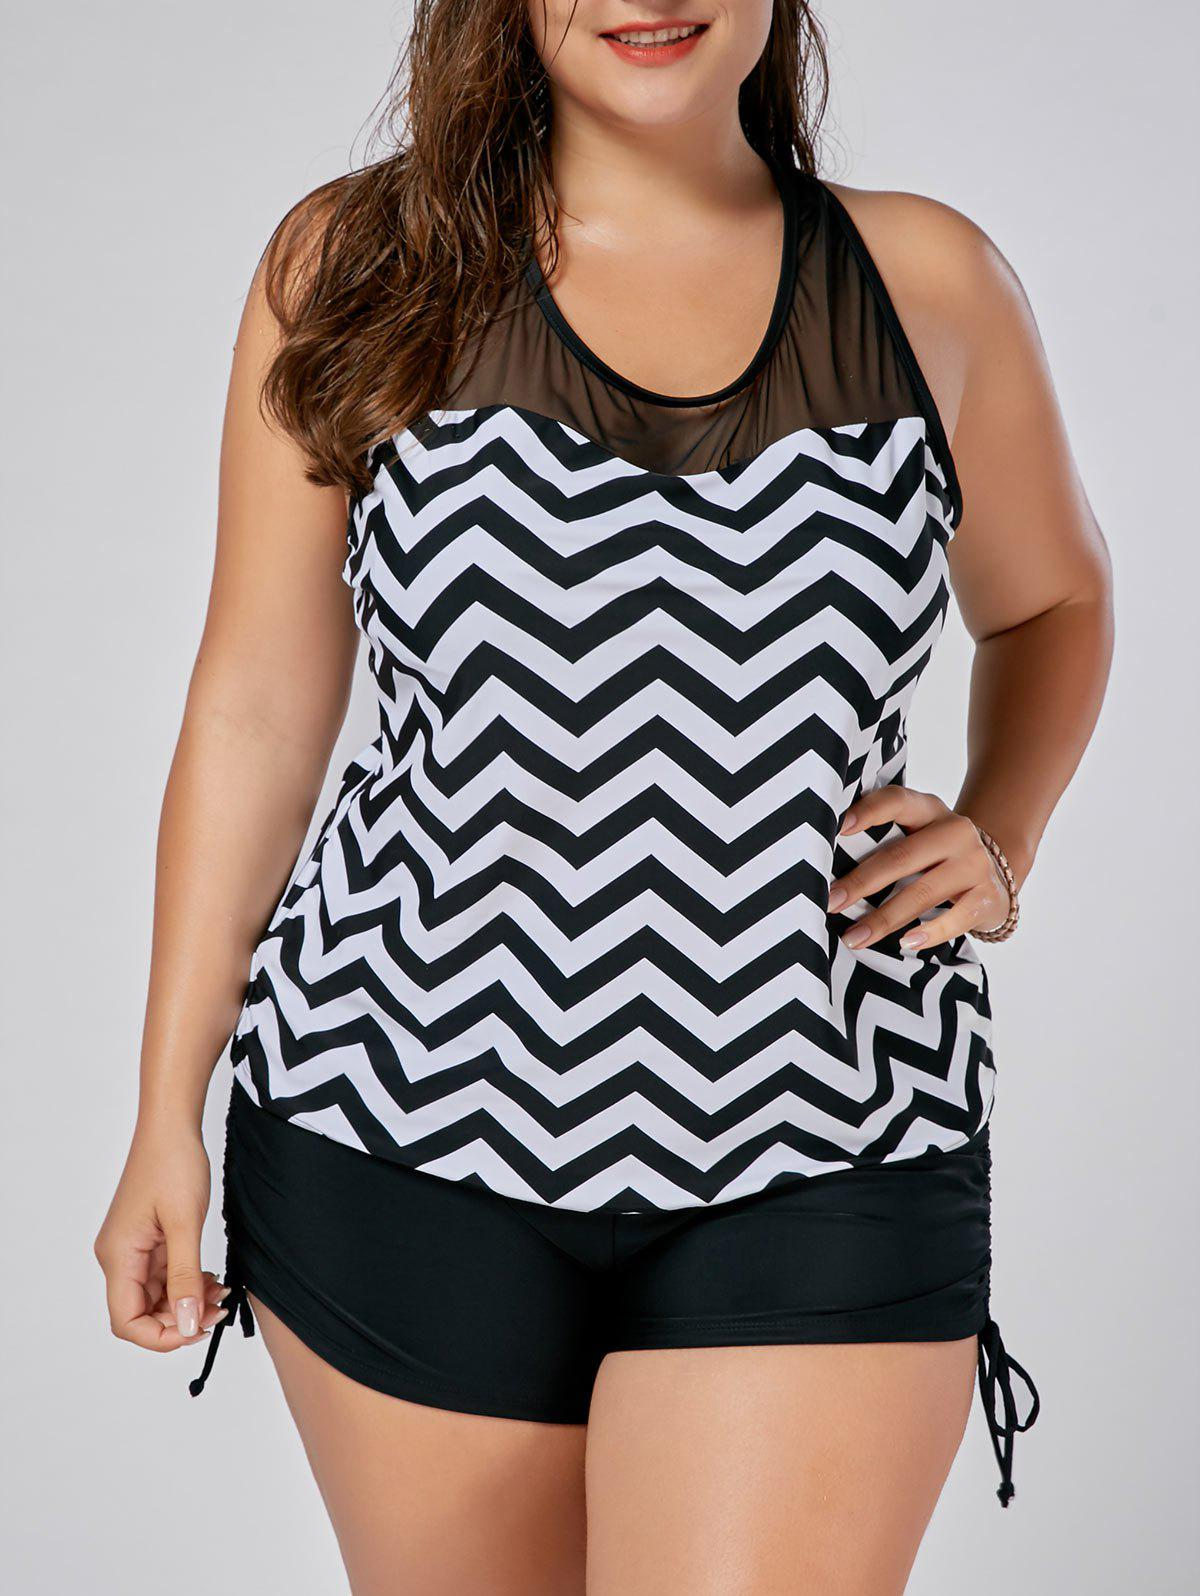 Mesh Insert Zigzag Plus Size Tankini SetWOMEN<br><br>Size: 3XL; Color: BLACK; Gender: For Women; Swimwear Type: Tankini; Material: Polyester,Spandex; Bra Style: Padded; Support Type: Wire Free; Pattern Type: Others; Embellishment: Mesh; Waist: Natural; Elasticity: Micro-elastic; Weight: 0.3700kg; Package Contents: 1 x Swim Top  1 x Panties;